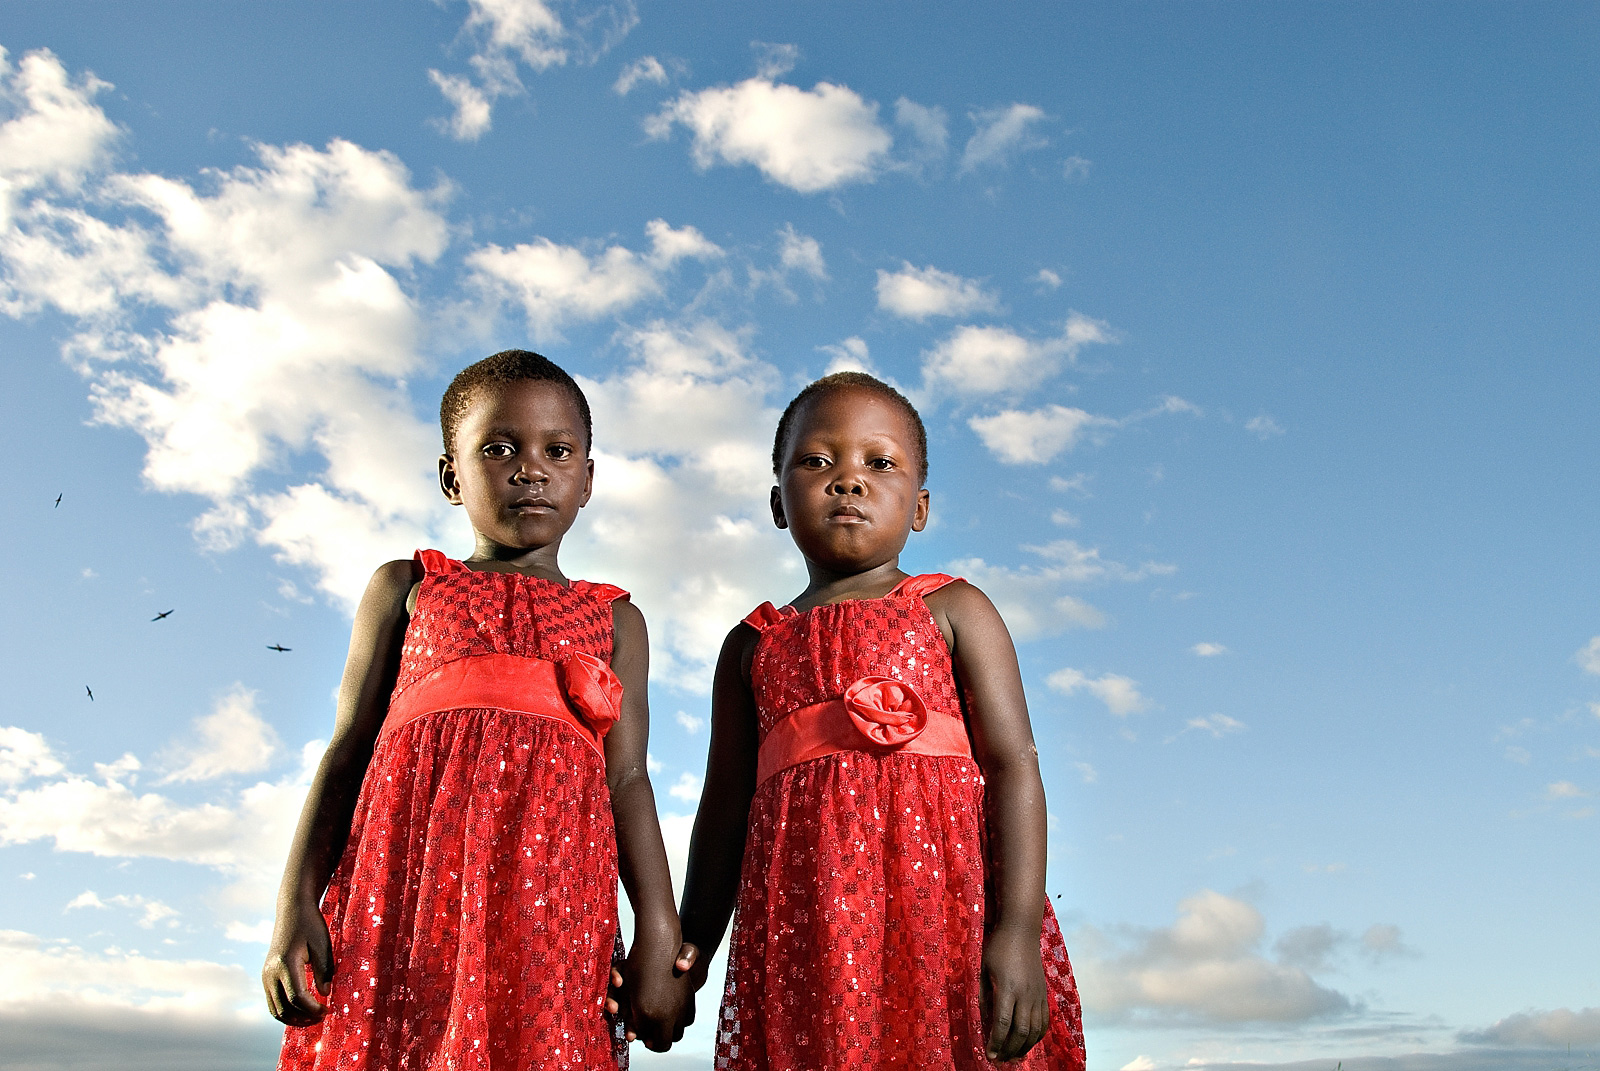 People-of-the-Transkei-South-African-Photographer-Jacki-Bruniquel-01